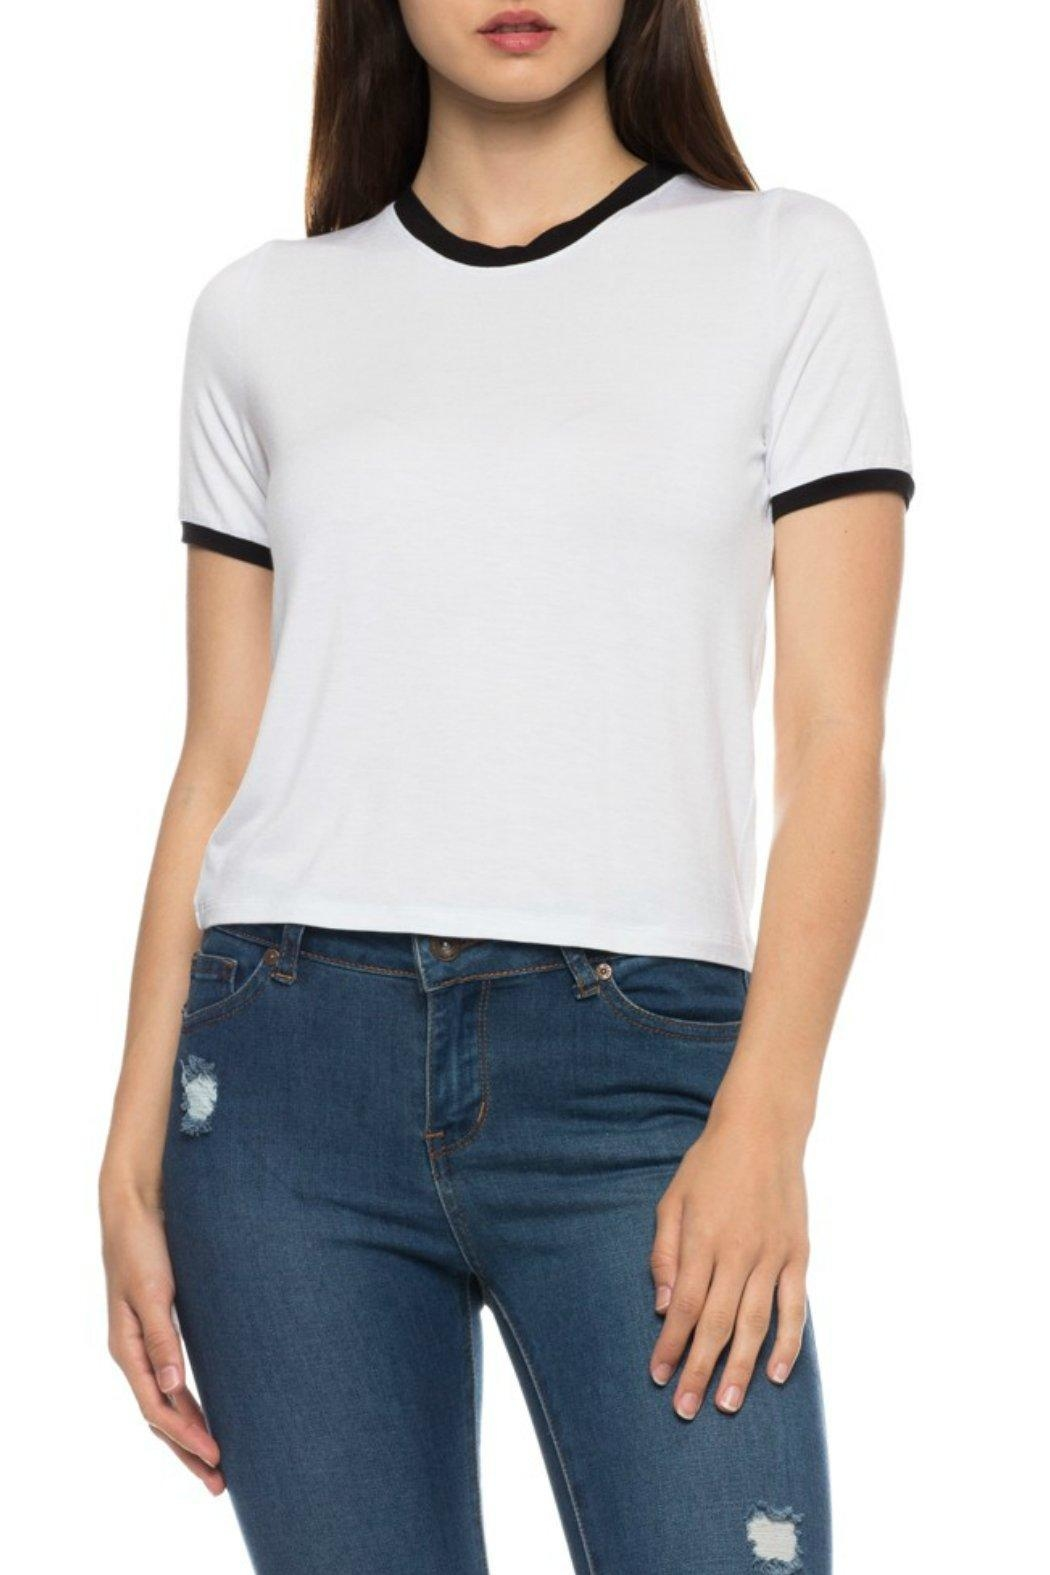 Minx White Contrast Tee - Front Full Image